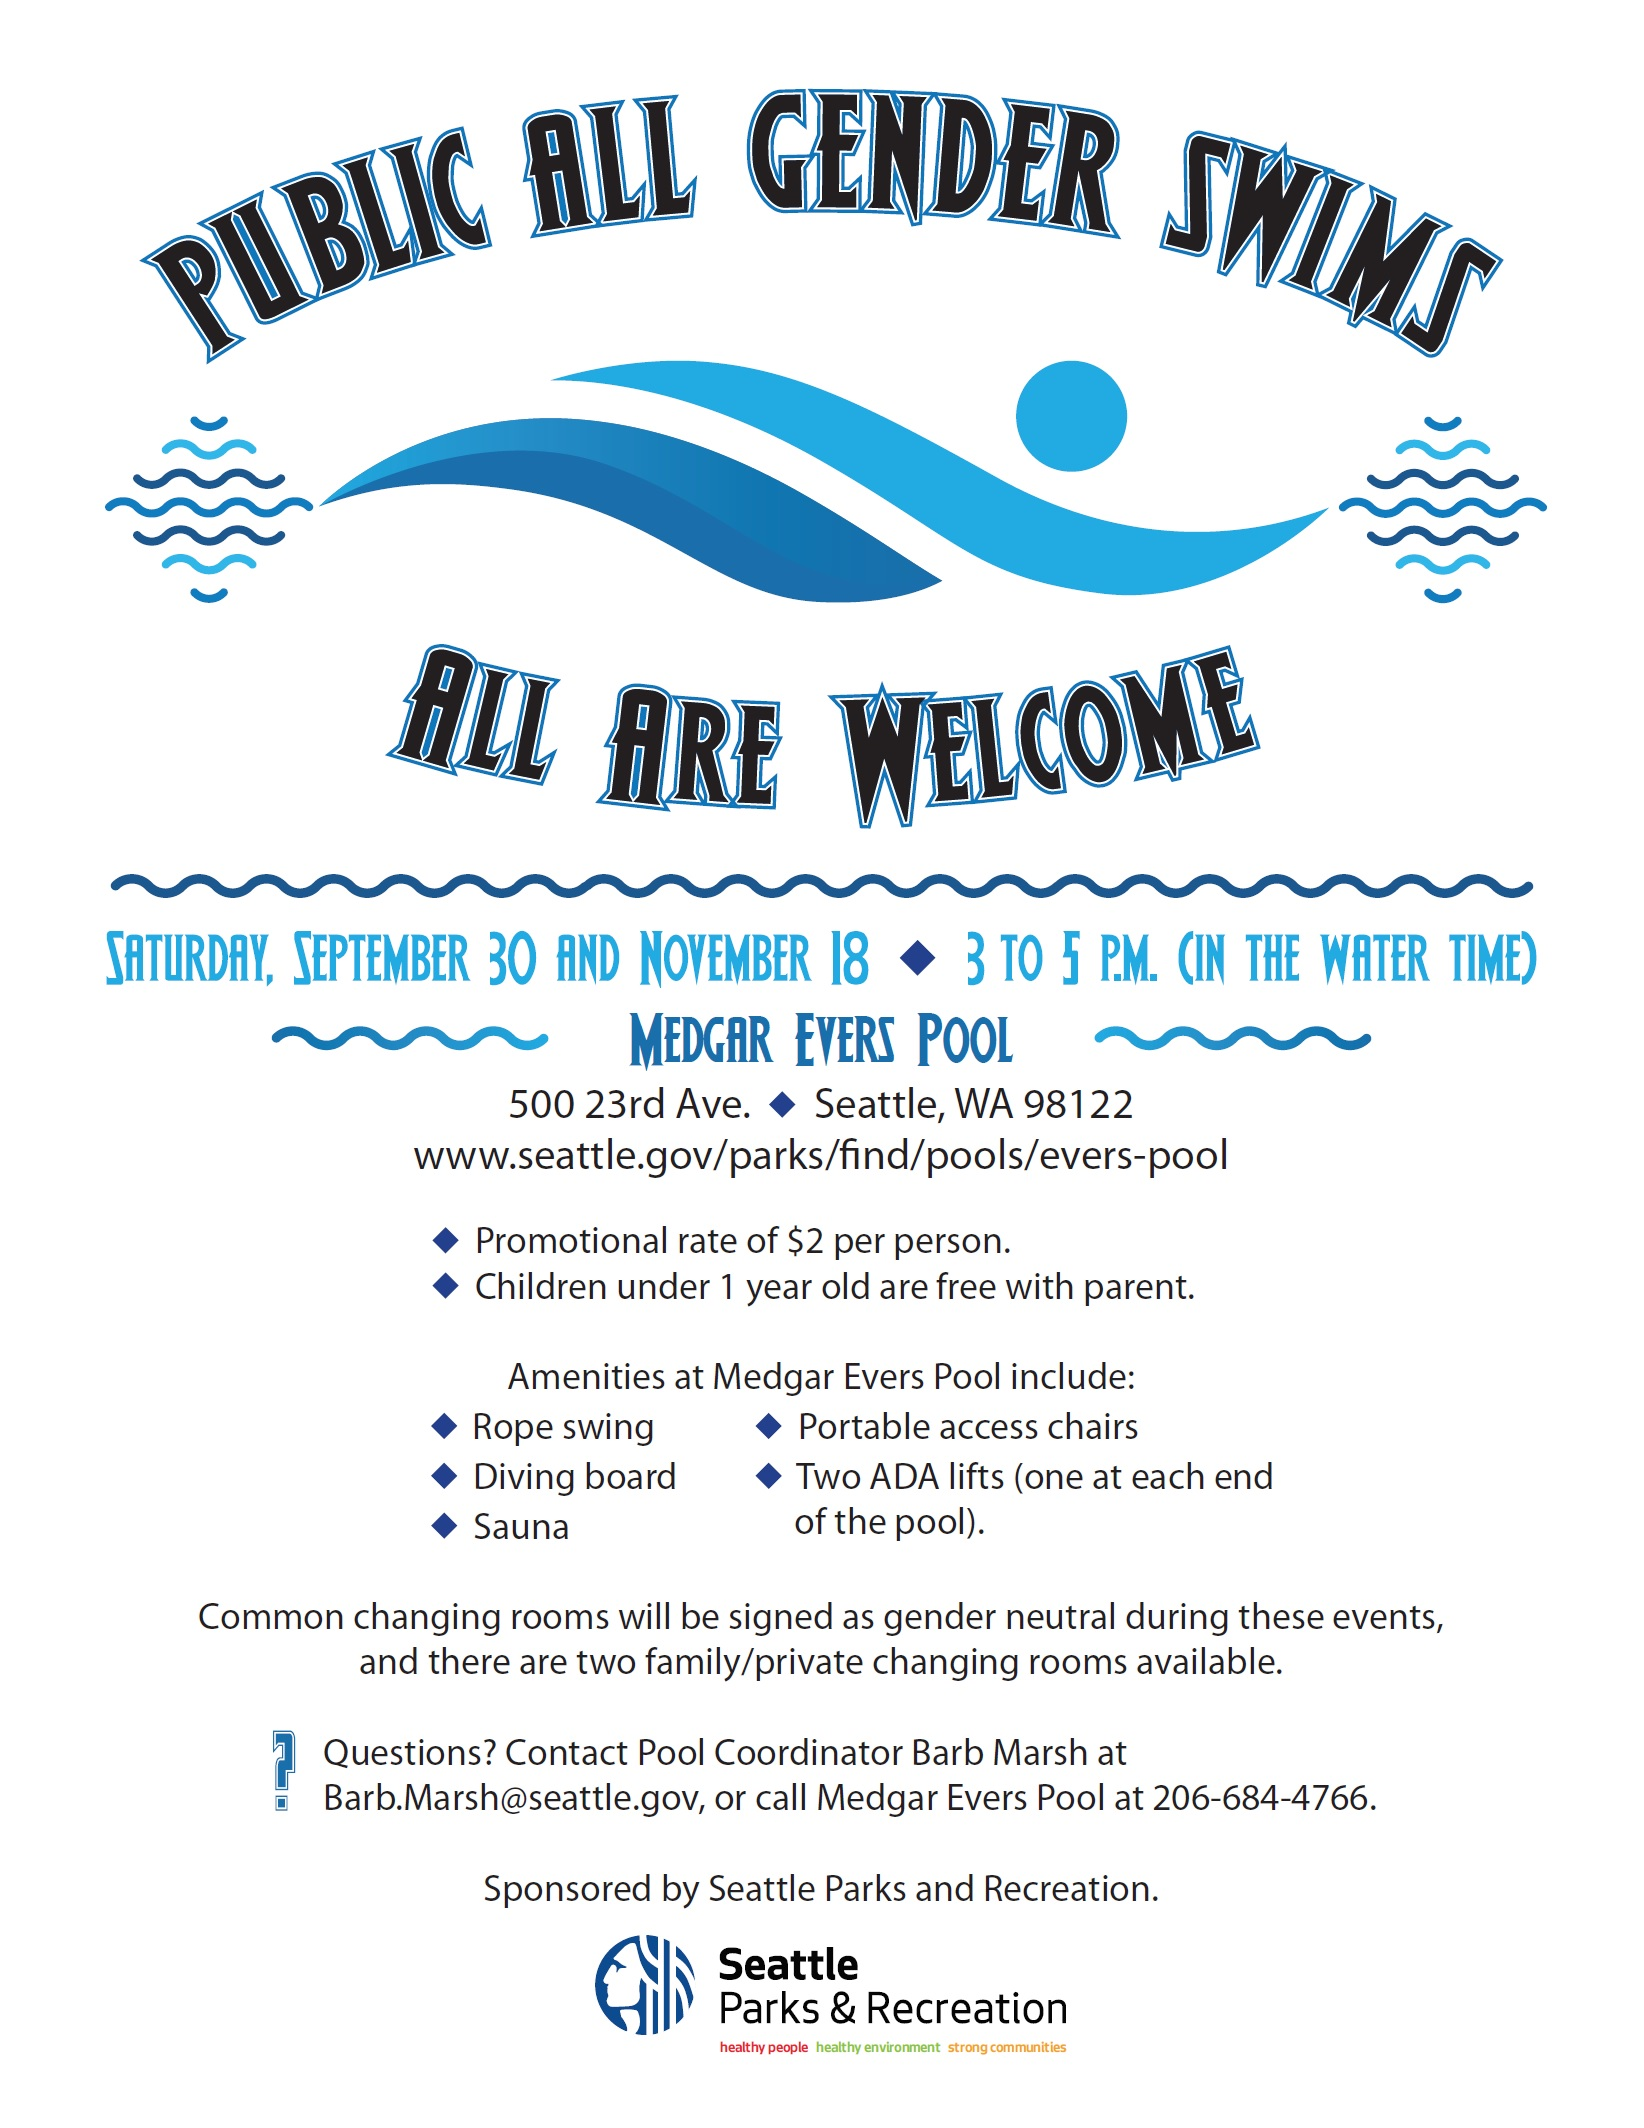 2017 Public All Gender Swim Seattle - Sept 30 & Nov 18